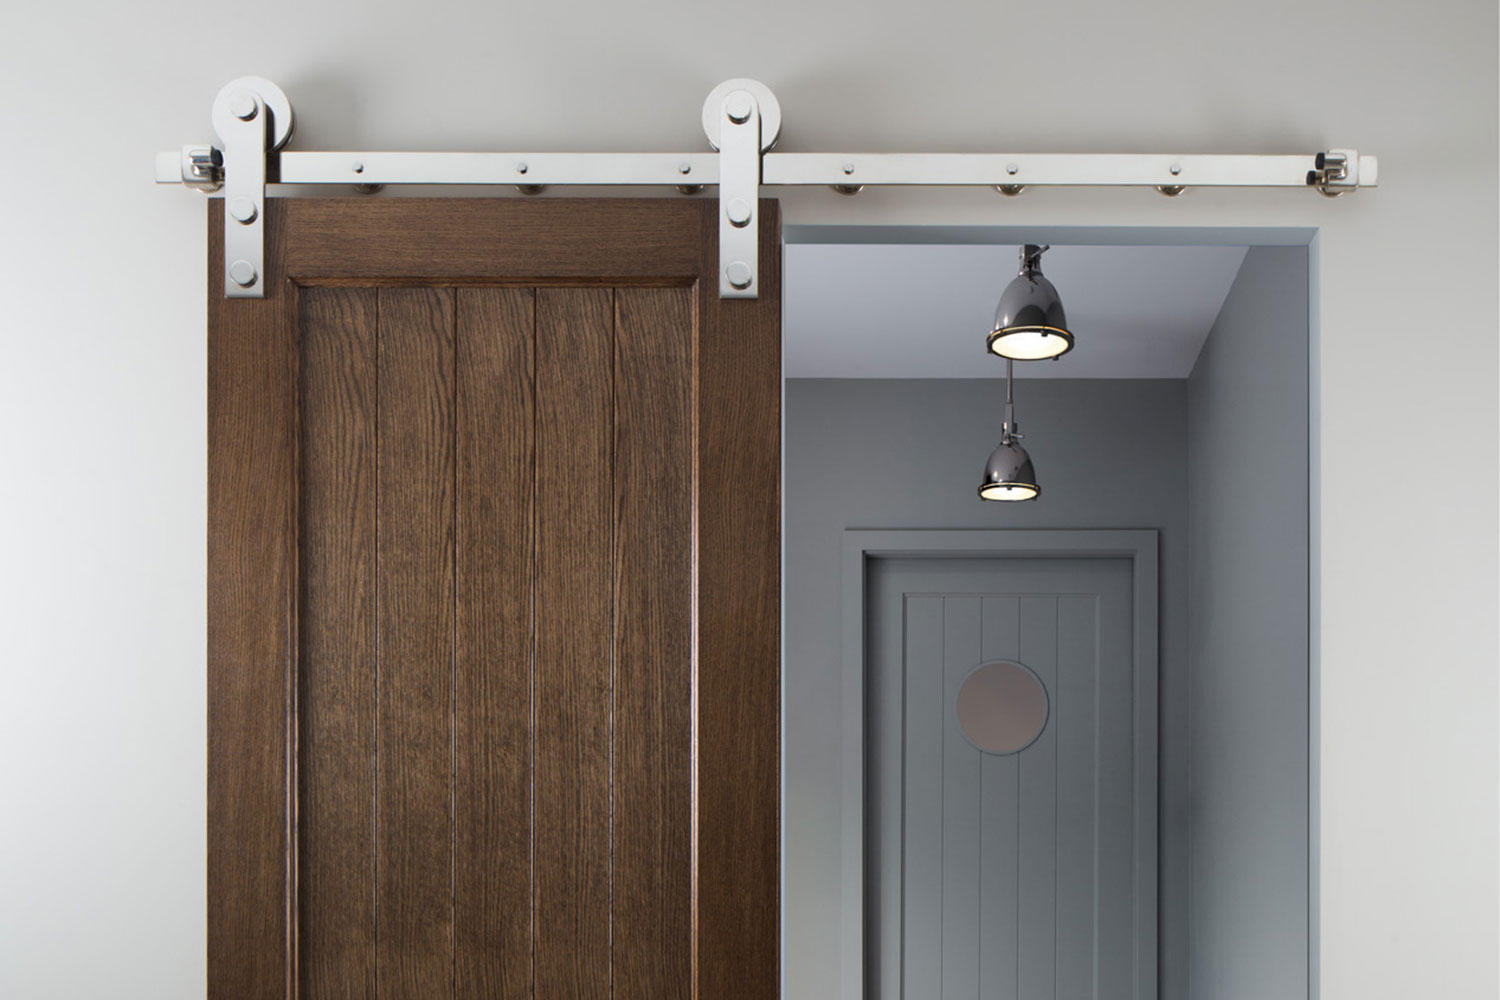 Sliding Barn Door Track : Door tracks sliding track folding